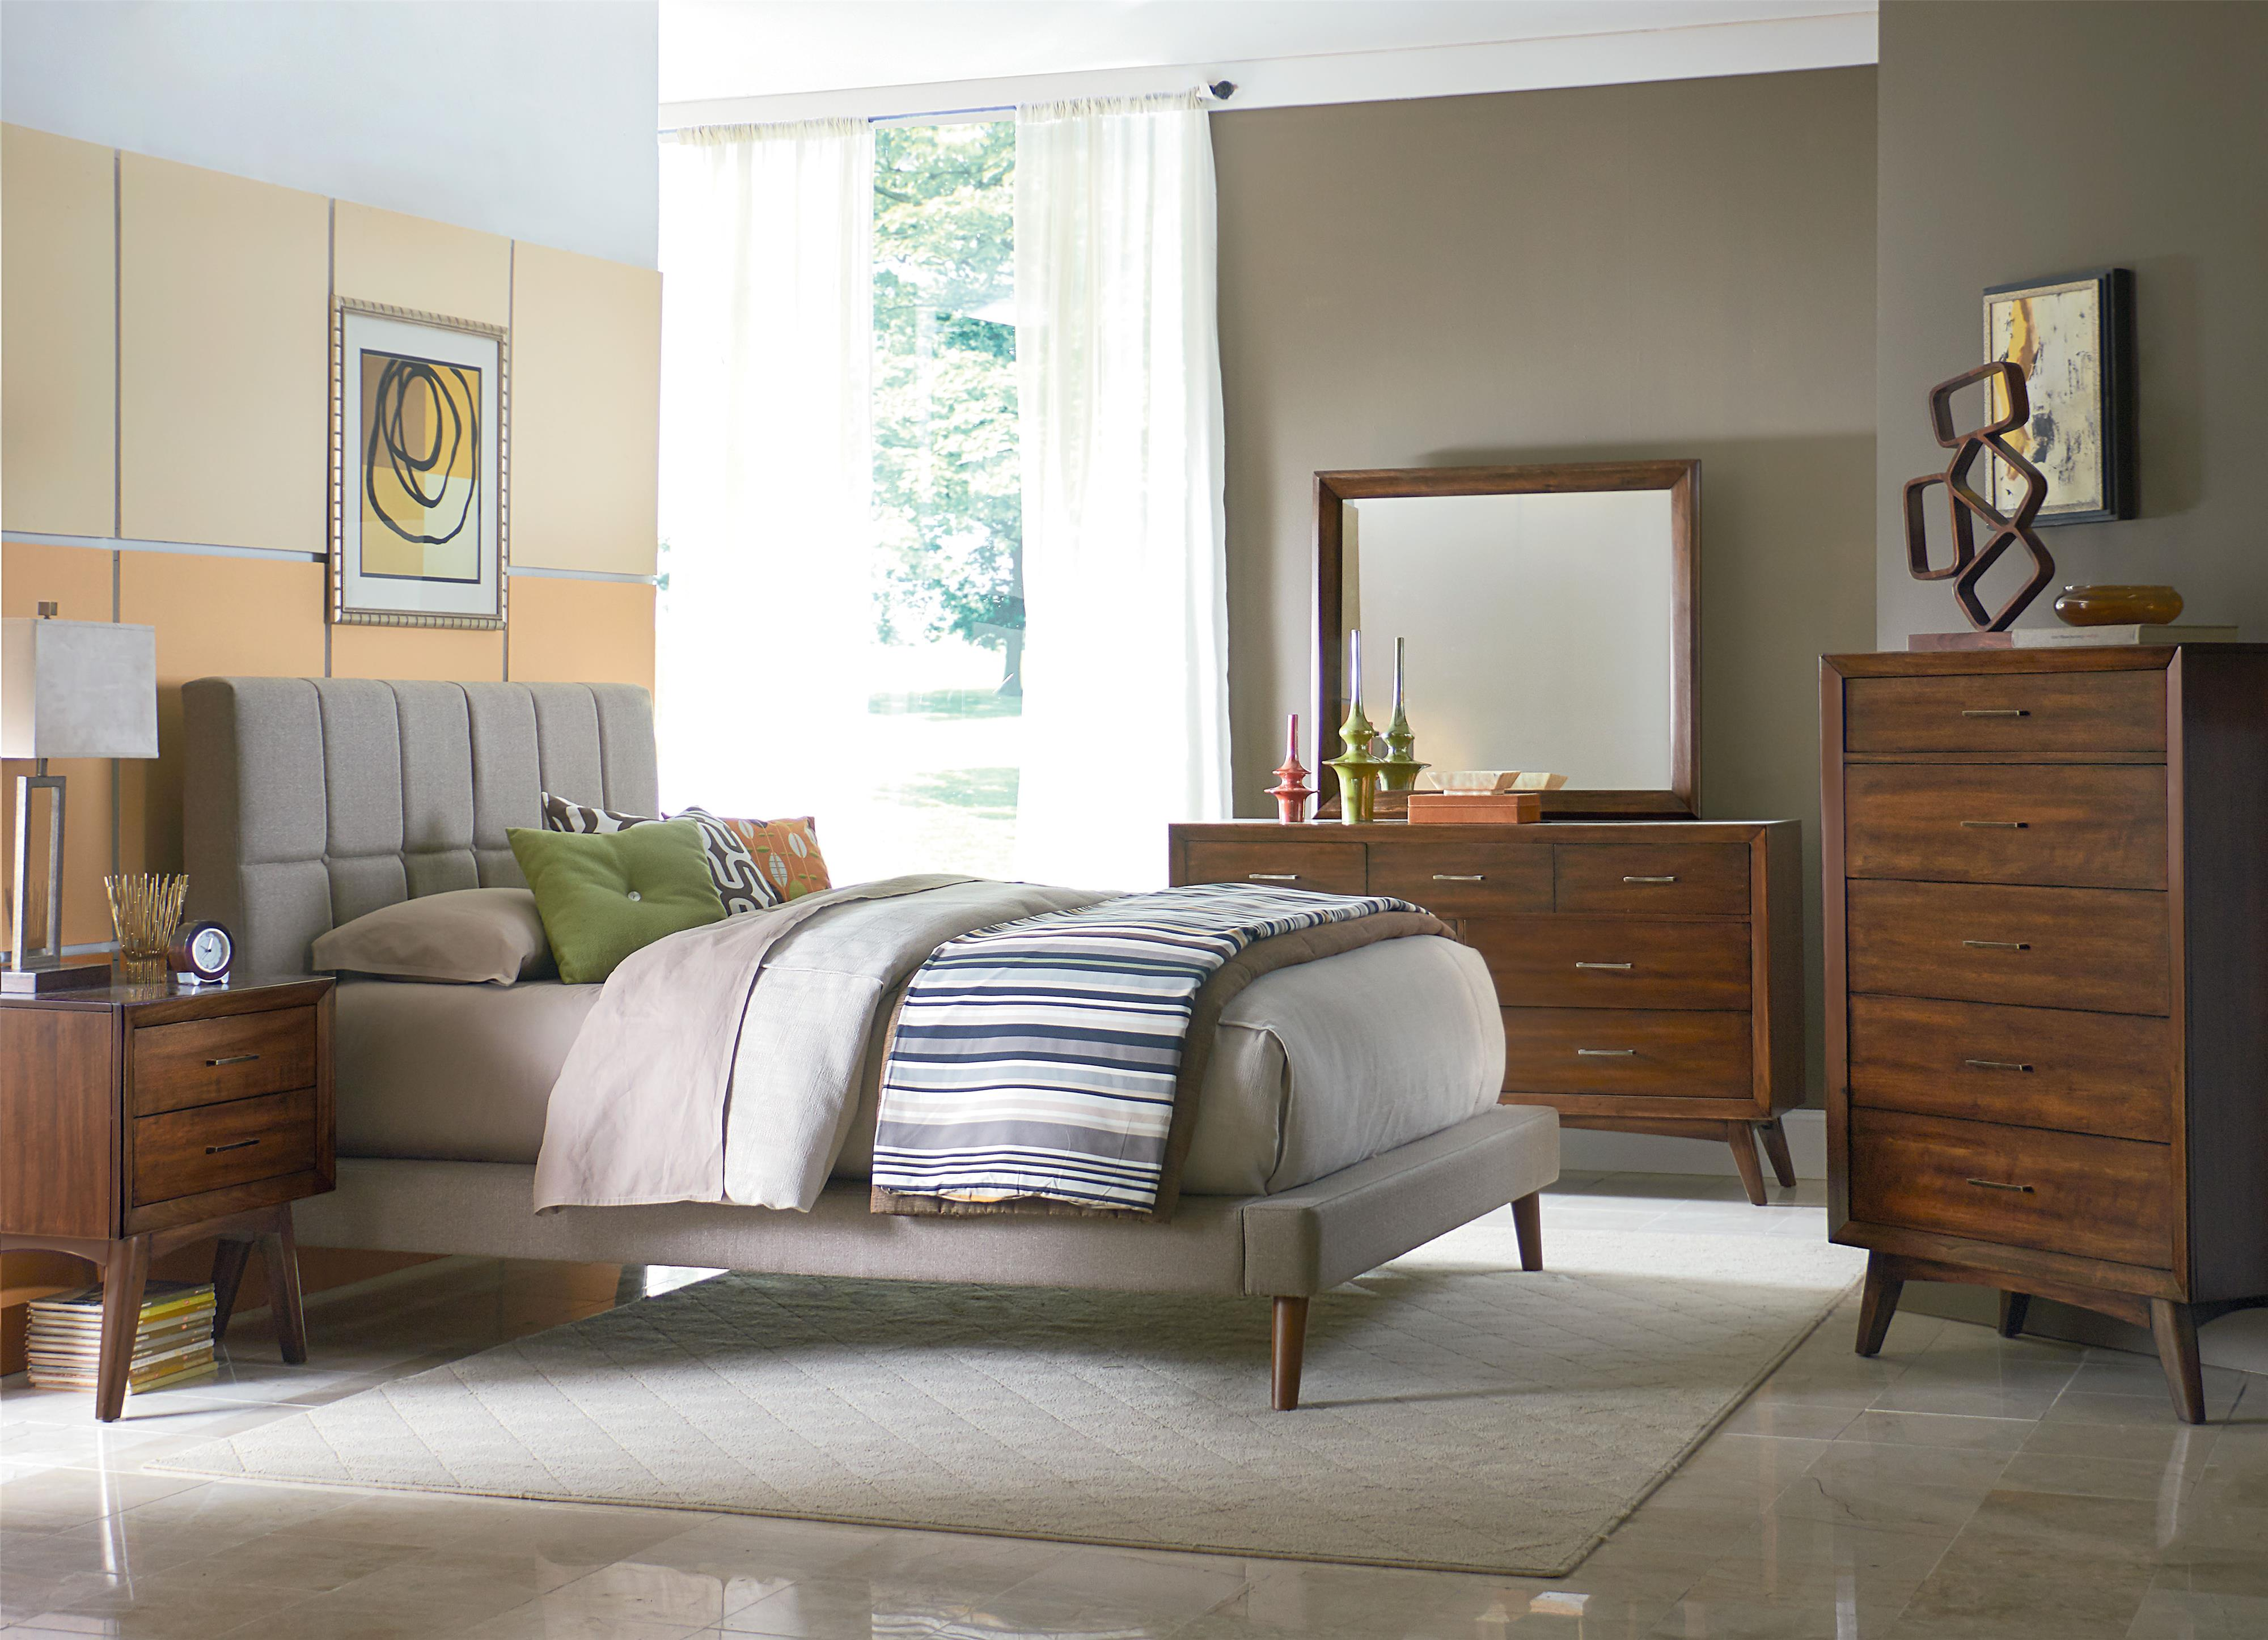 wall panels Mid century modern bedroom furniture, Modern